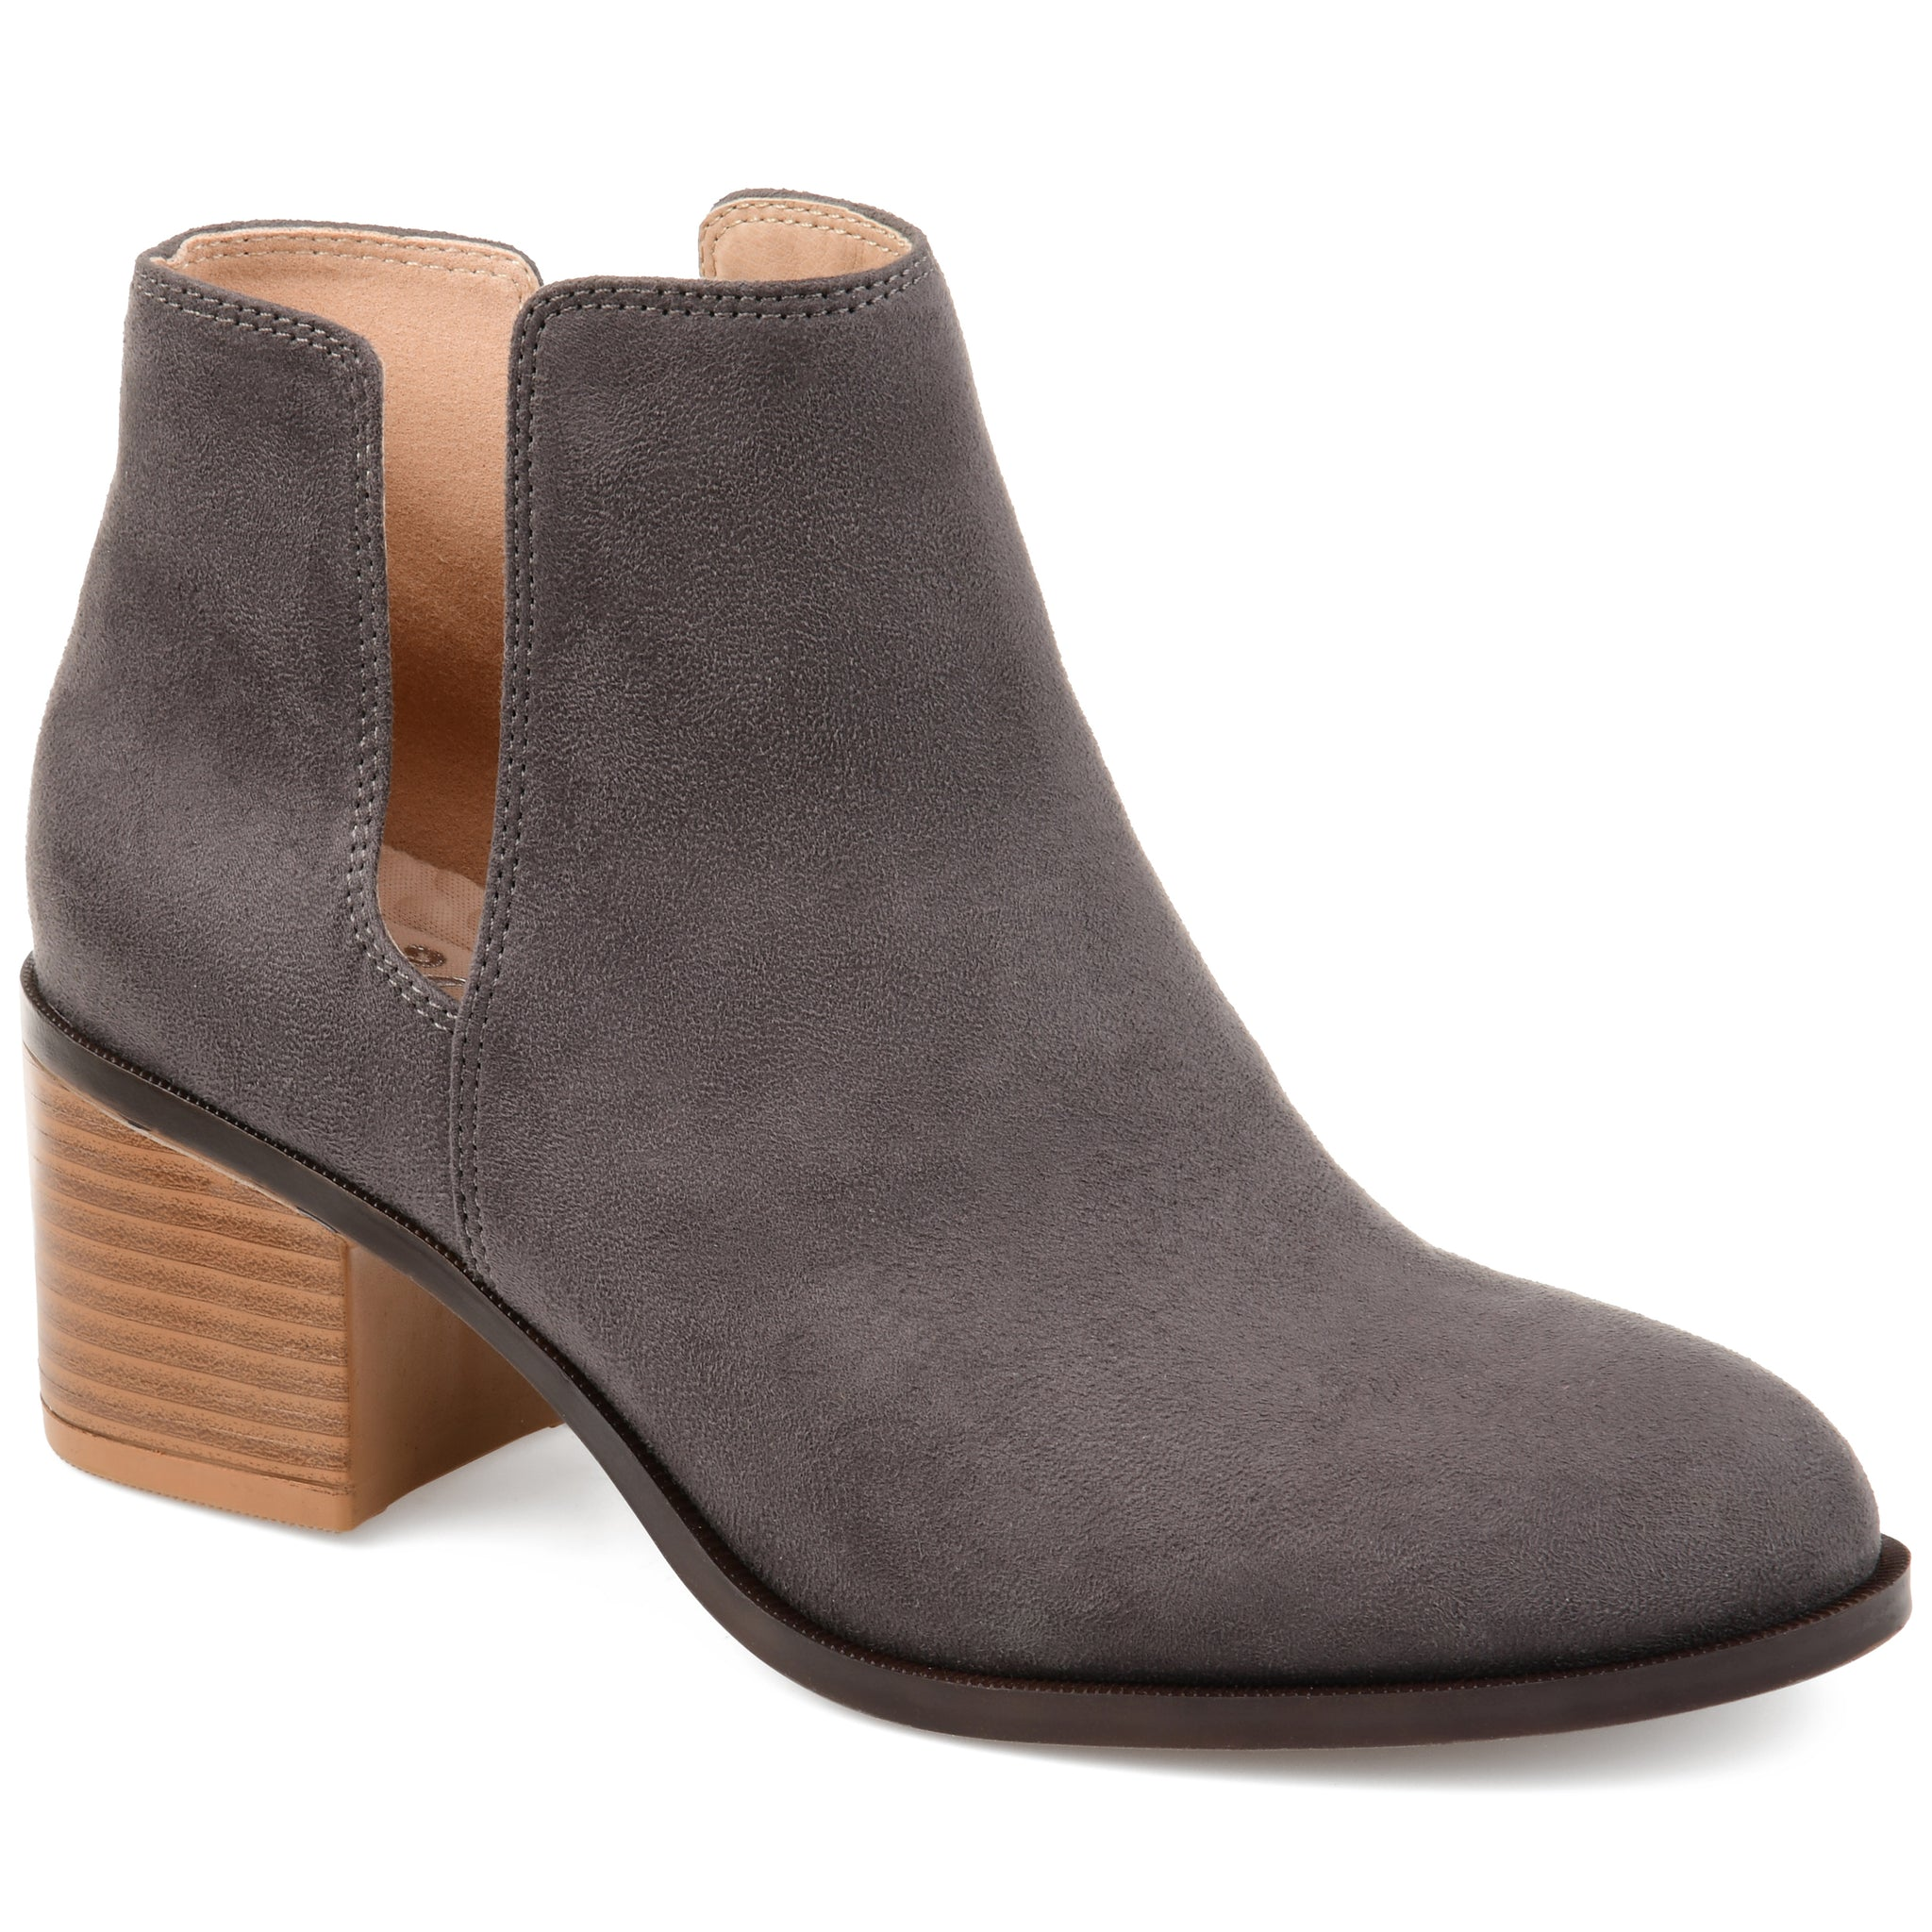 Deep Side Cut-Out Bootie